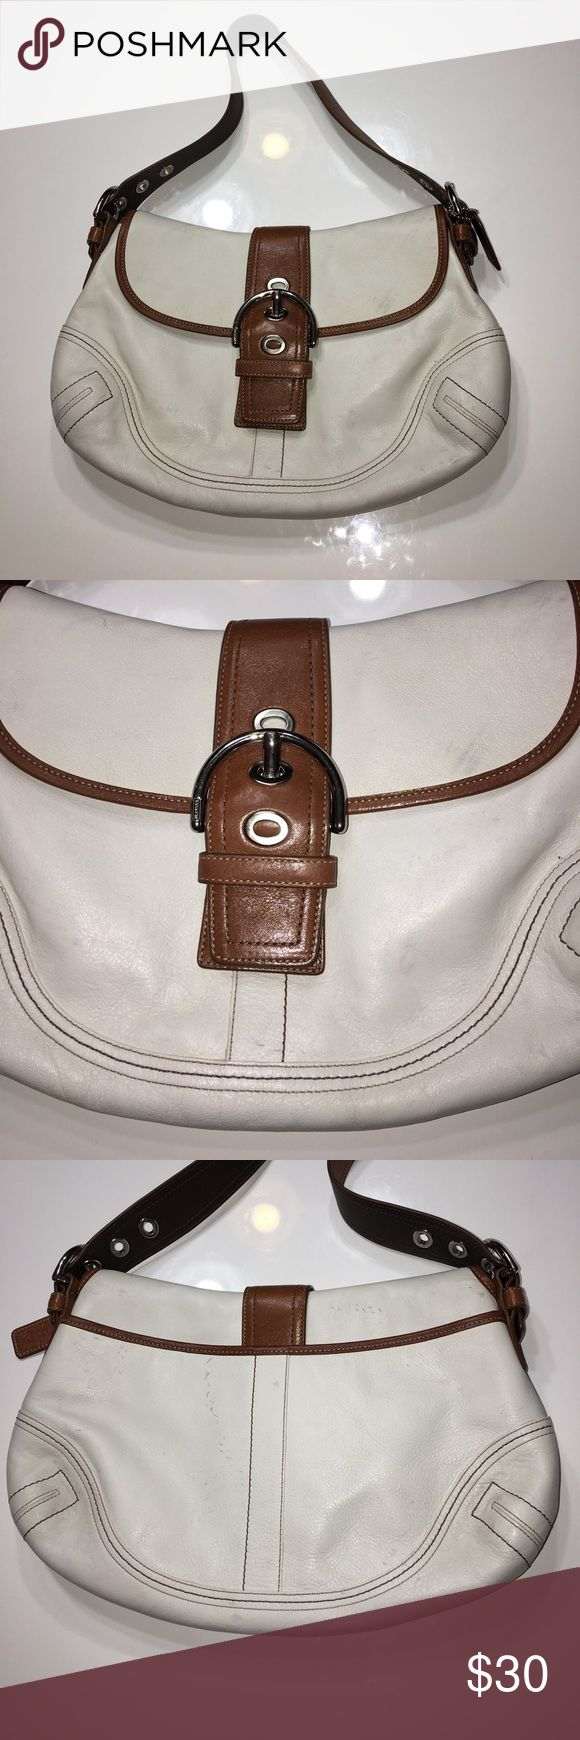 coach leather handbags outlet omv4  Authentic Coach leather handbag purse